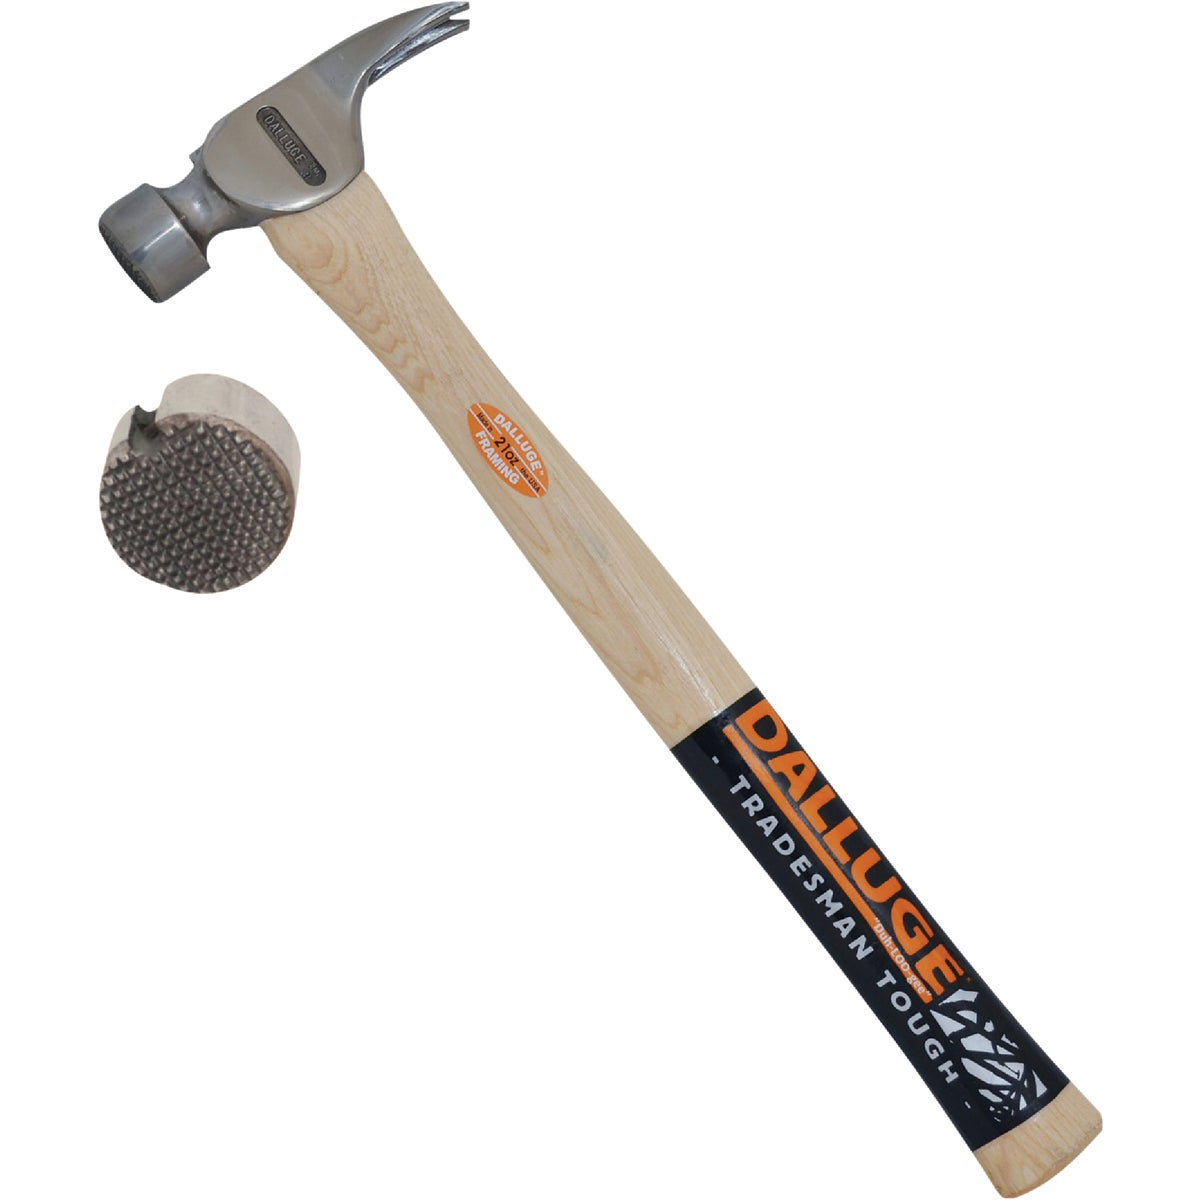 24OZ FRAMING HAMMER - DOC-24C by Maasdam Dead On